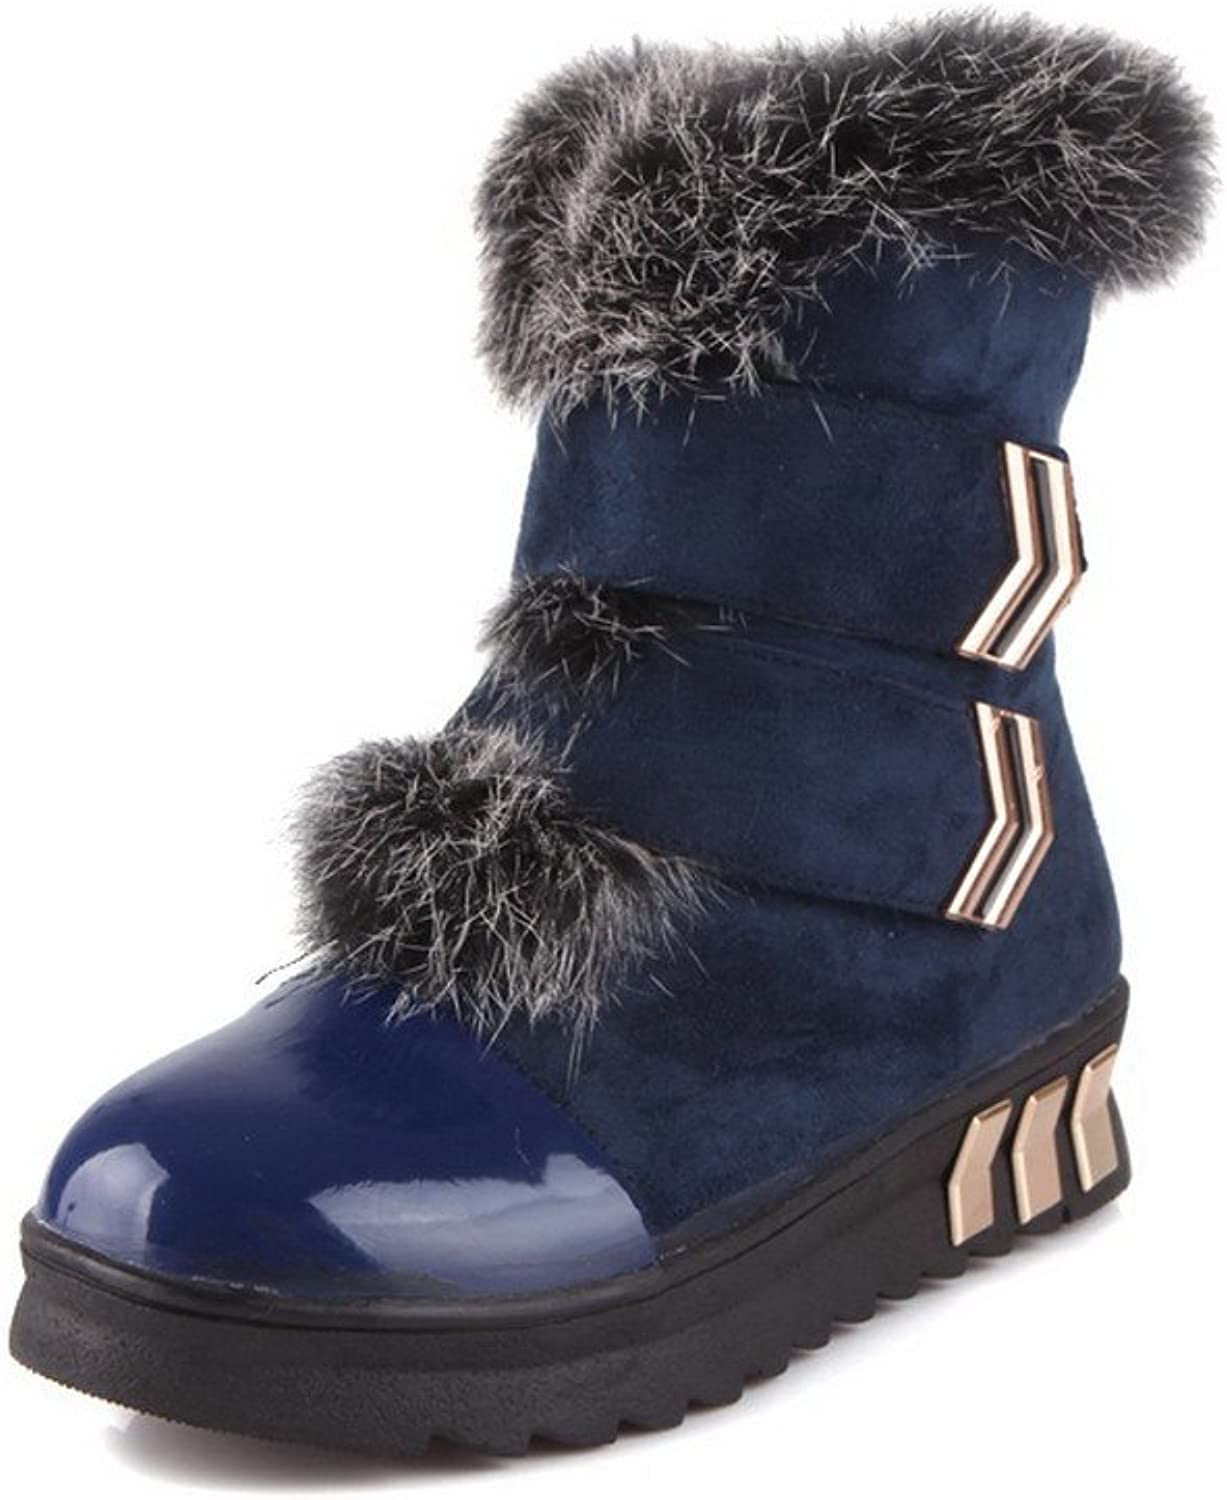 QueenFashion Women's Sweet colorful Ankle Snow Boots with Metalornament and Velcro